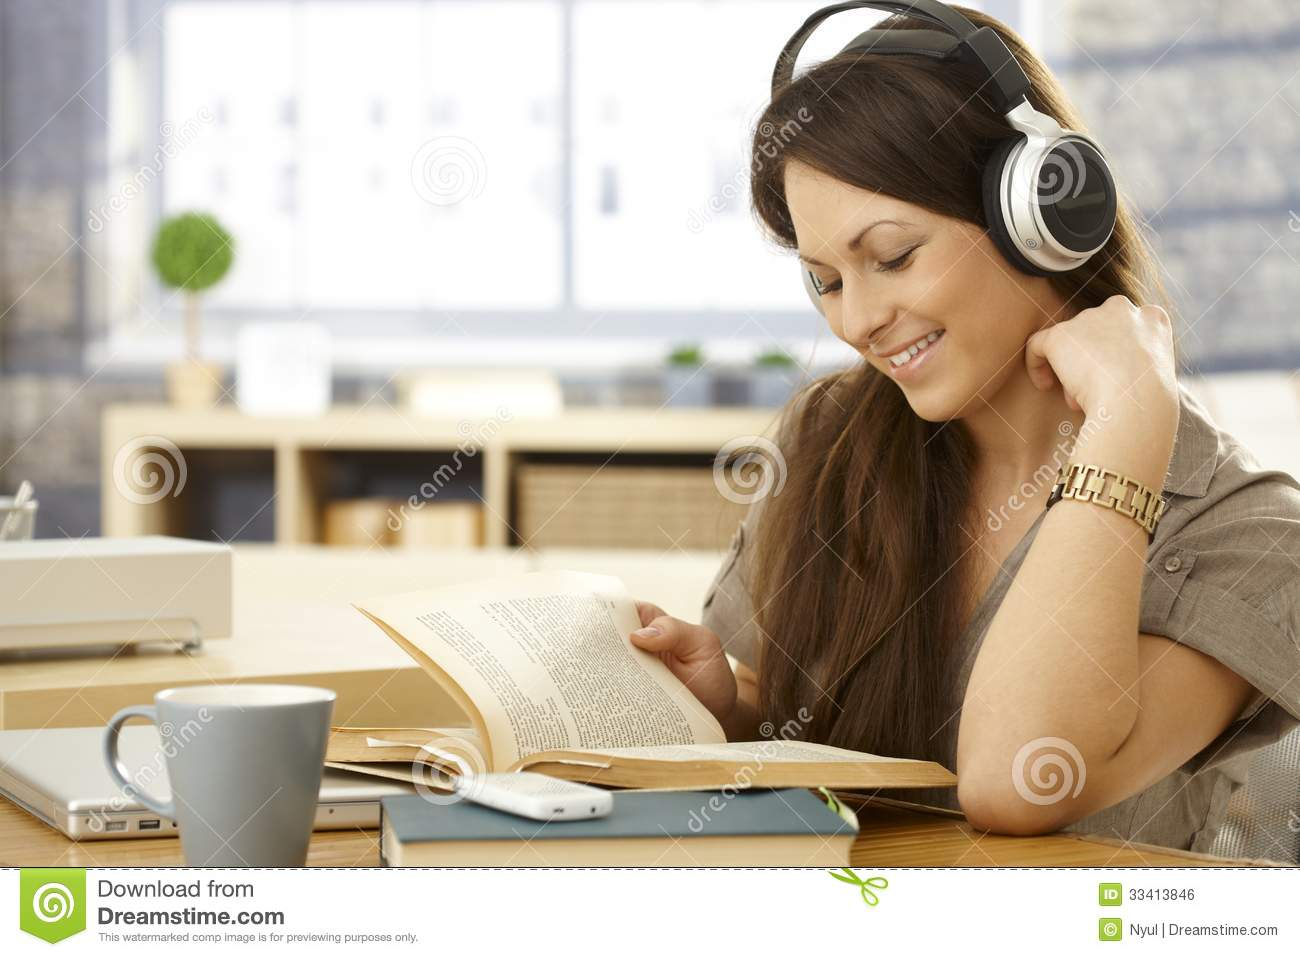 Baby bed for travel - Happy Woman With Book And Headphones Royalty Free Stock Image Image